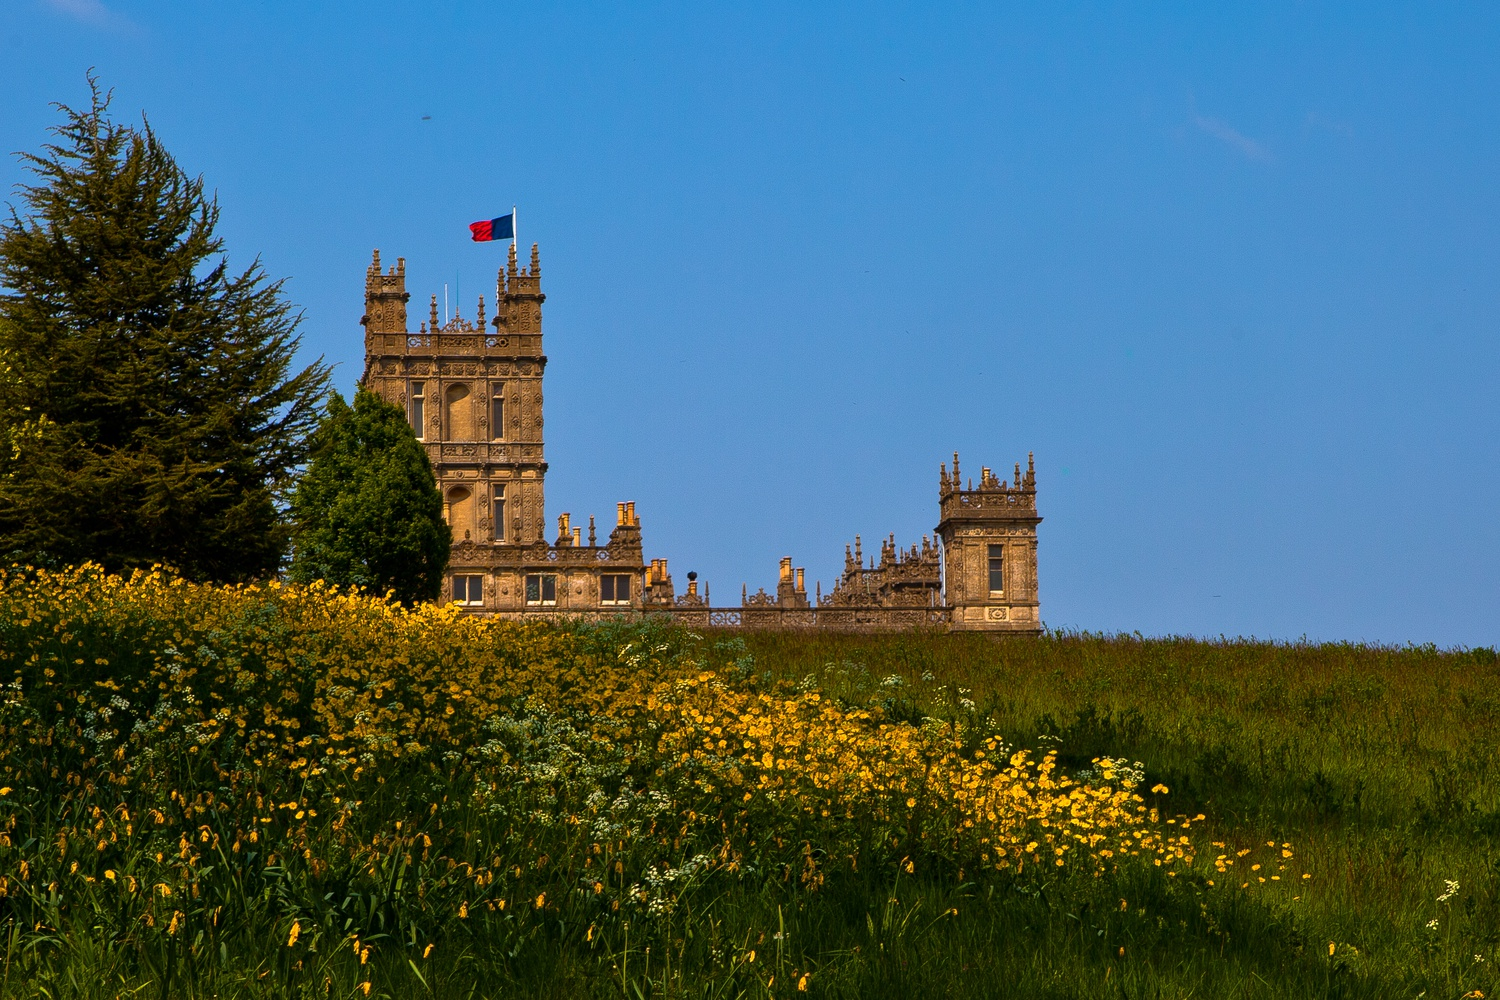 """There is a new, filmic addition to the """"Downton Abbey"""" world."""